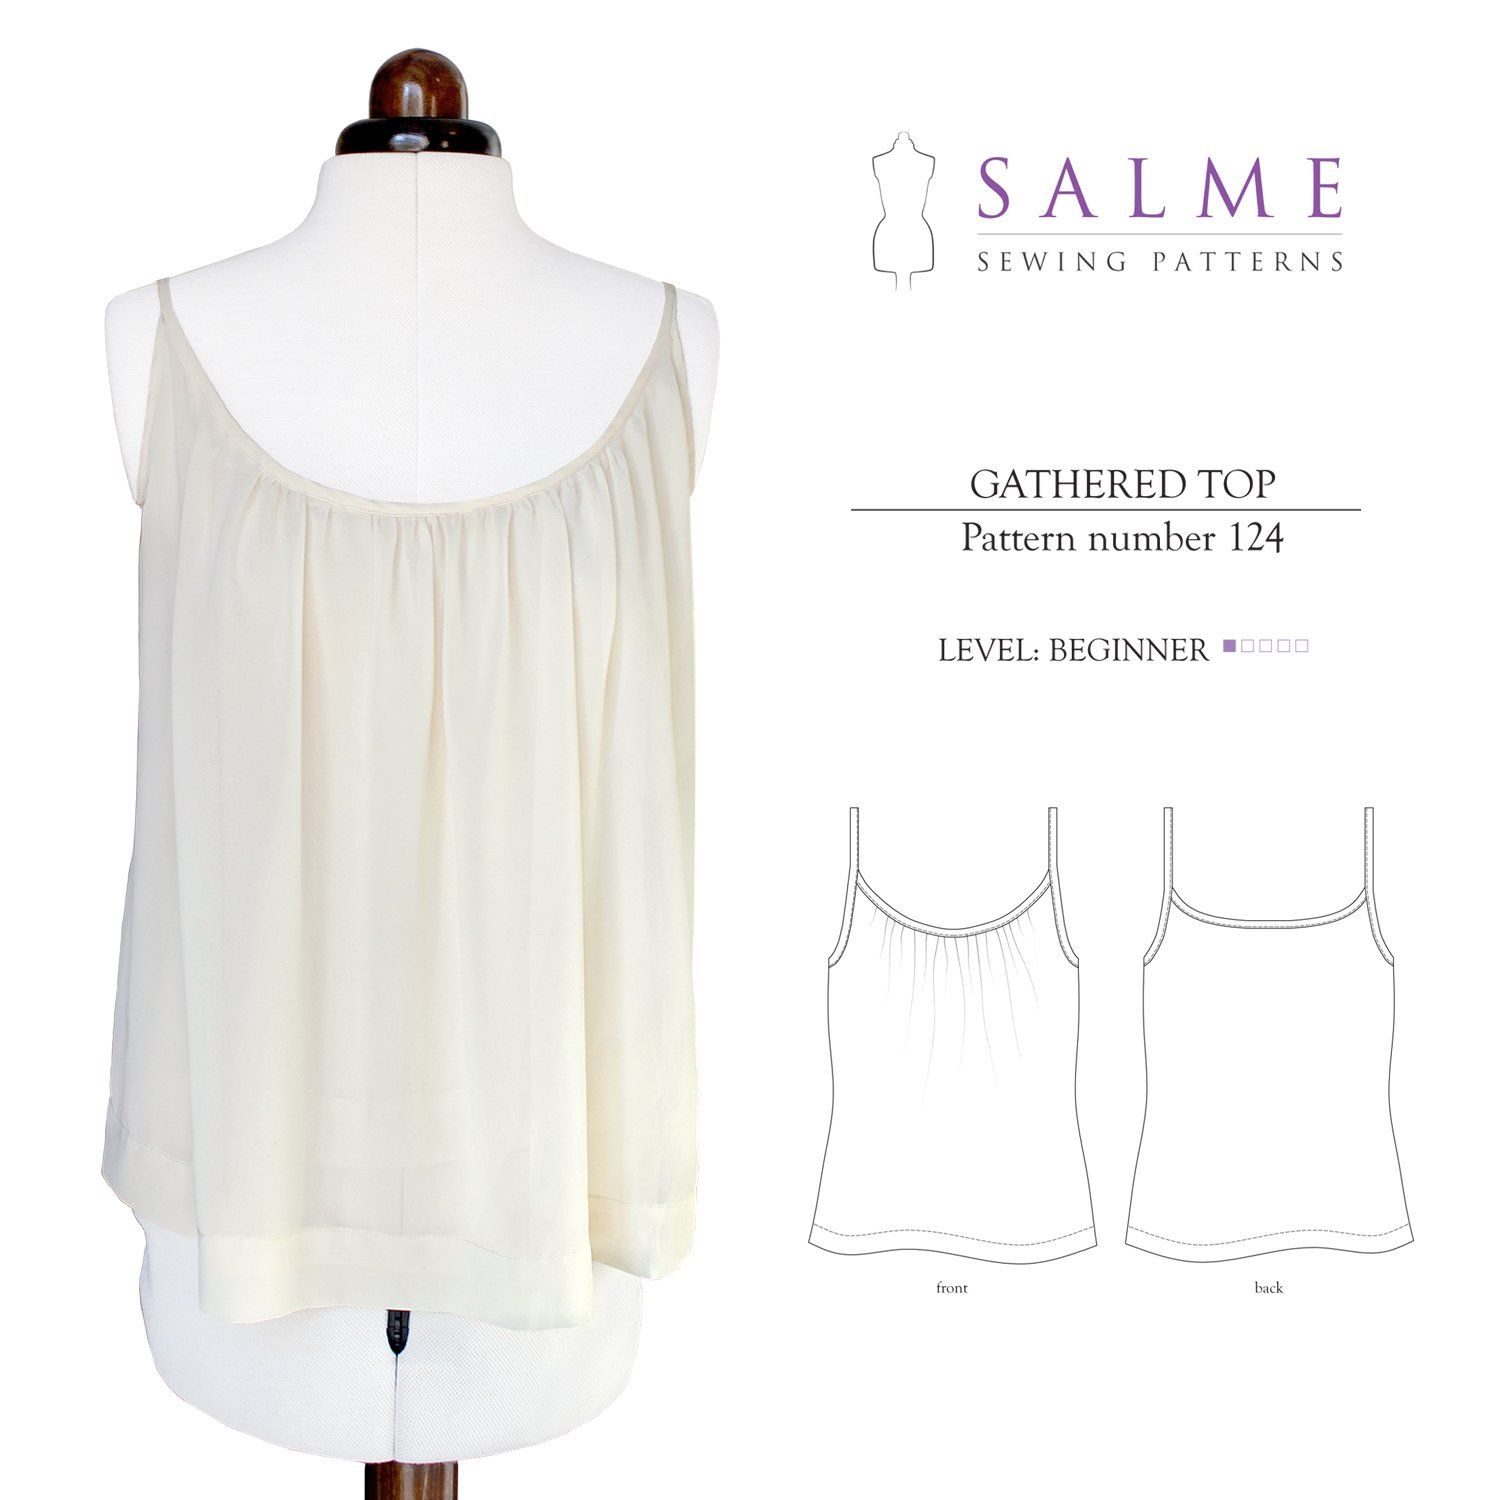 Salme Sewing Patterns Gathered Top Downloadable Pattern 124